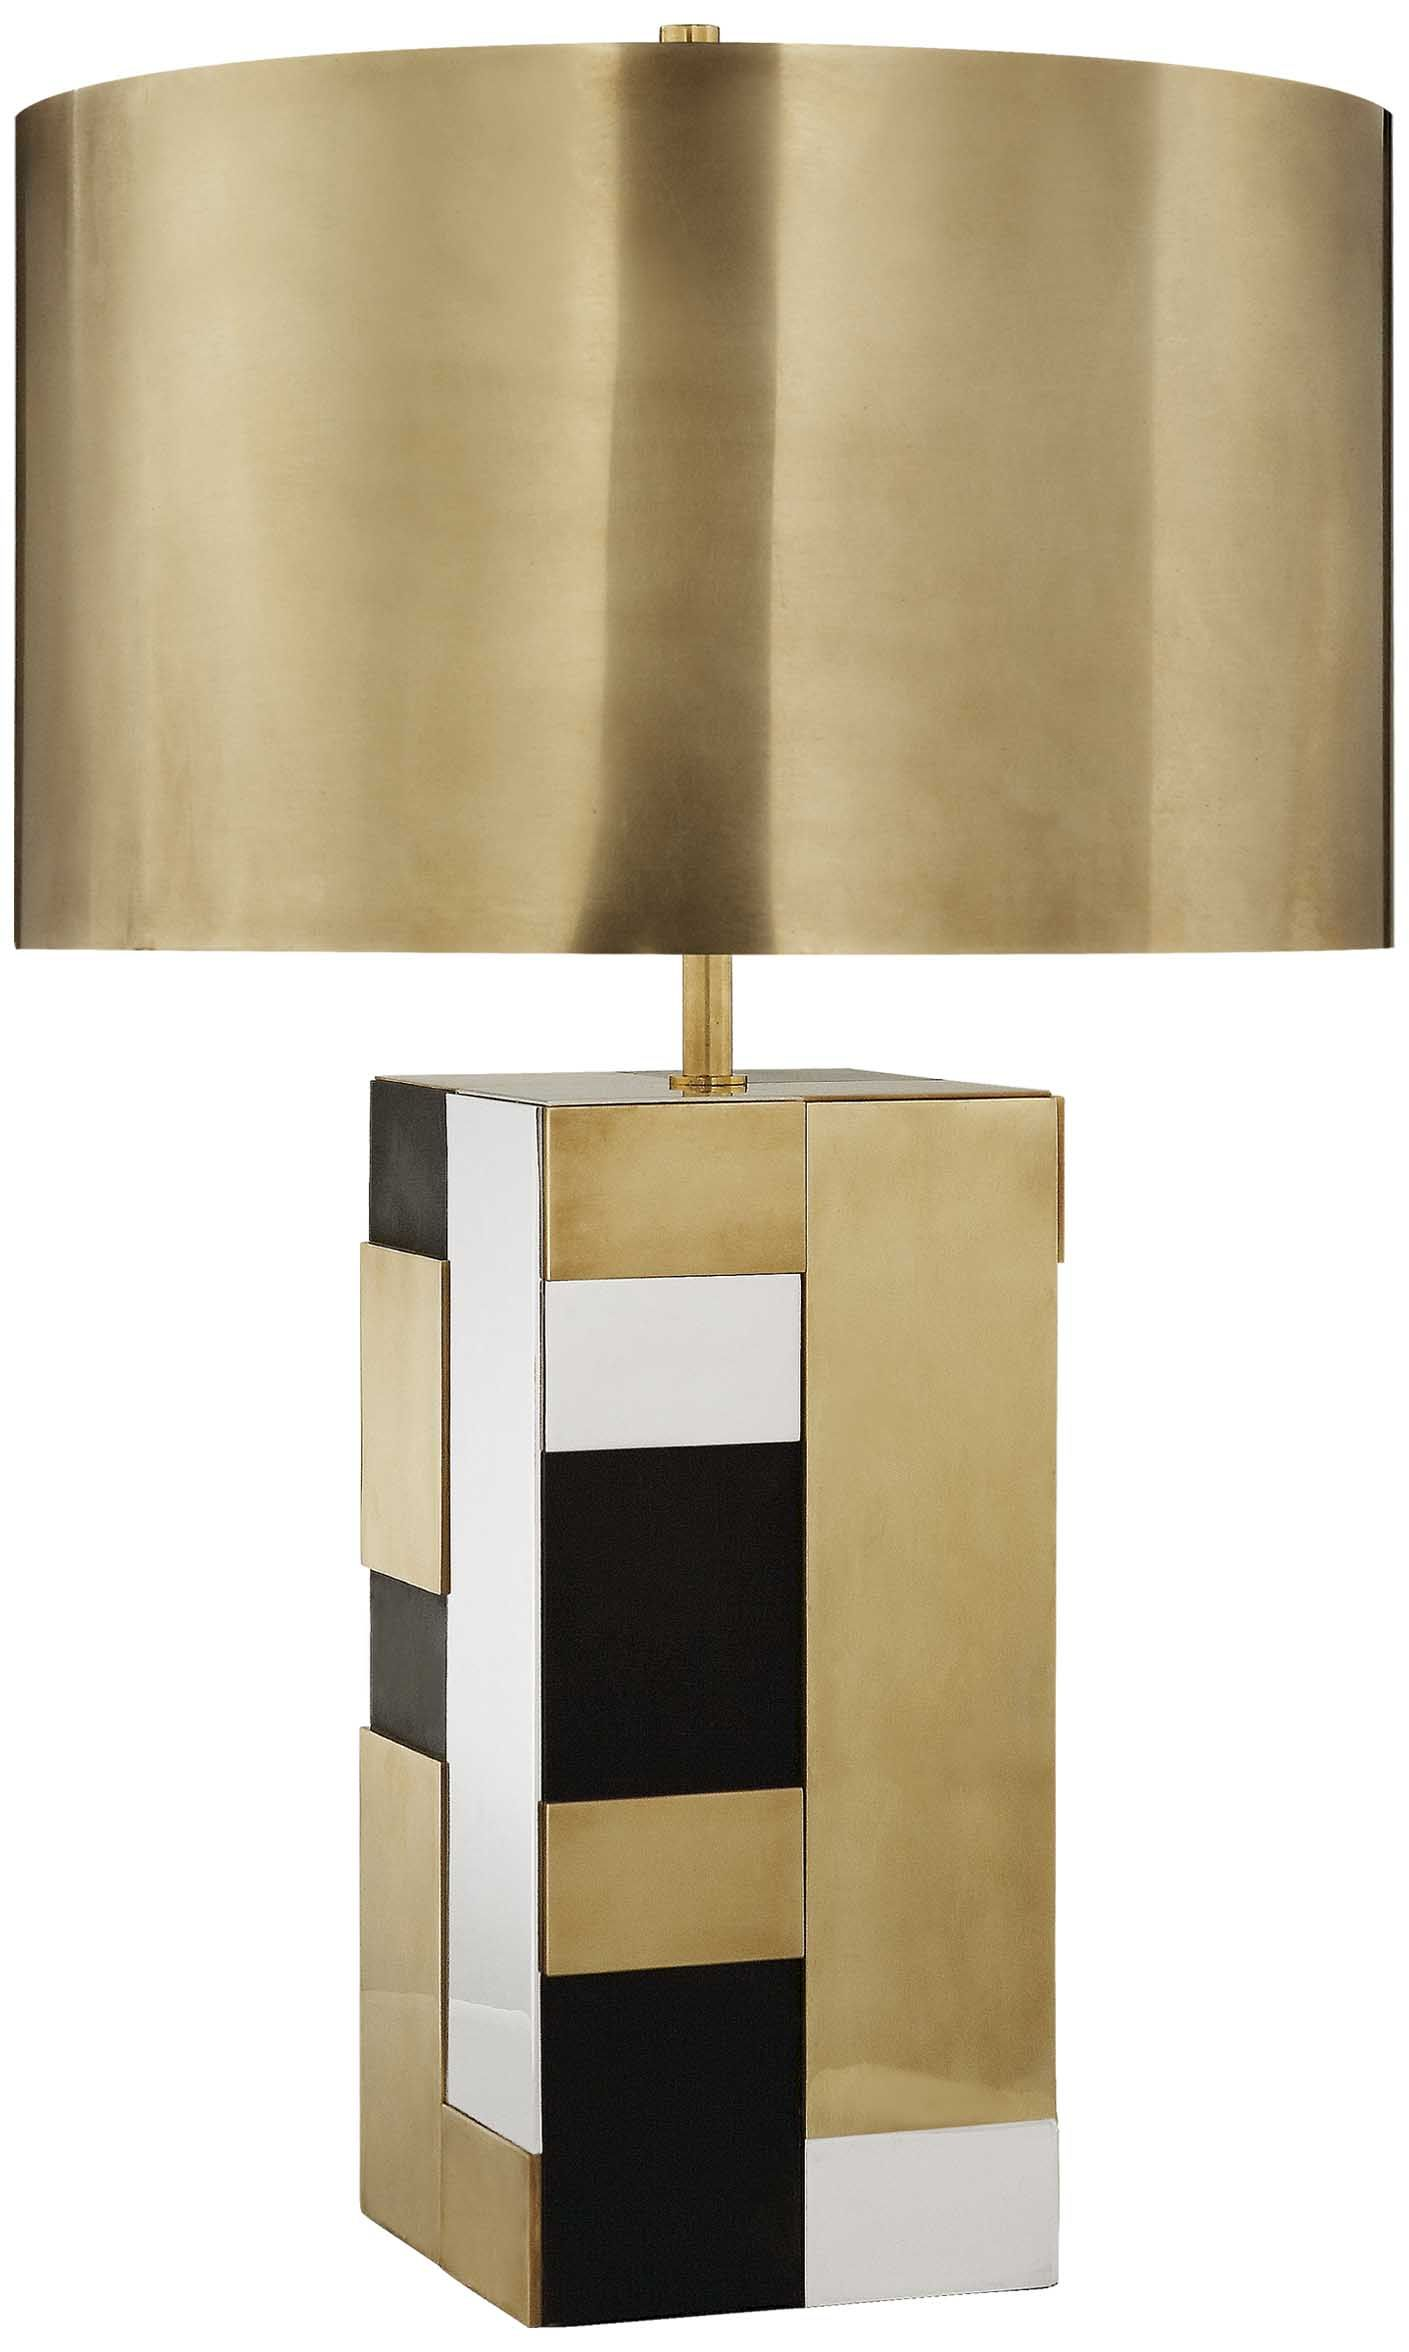 Kelly Wearstler Bloque Table Lamp Modern Lamp Brass Table Lamps Table Lamp